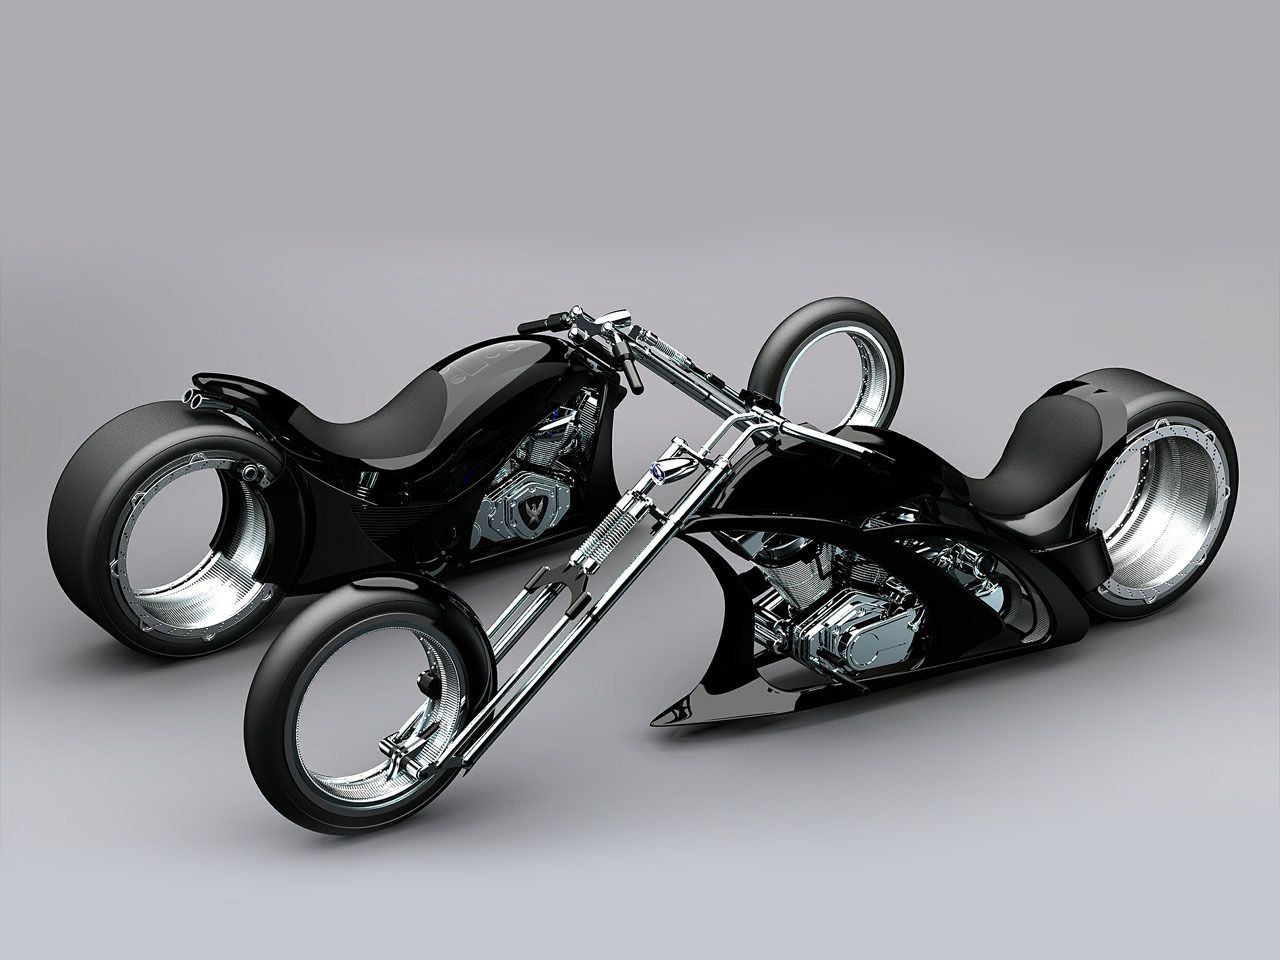 17 best images about custom motorcycles on pinterest bikes cool